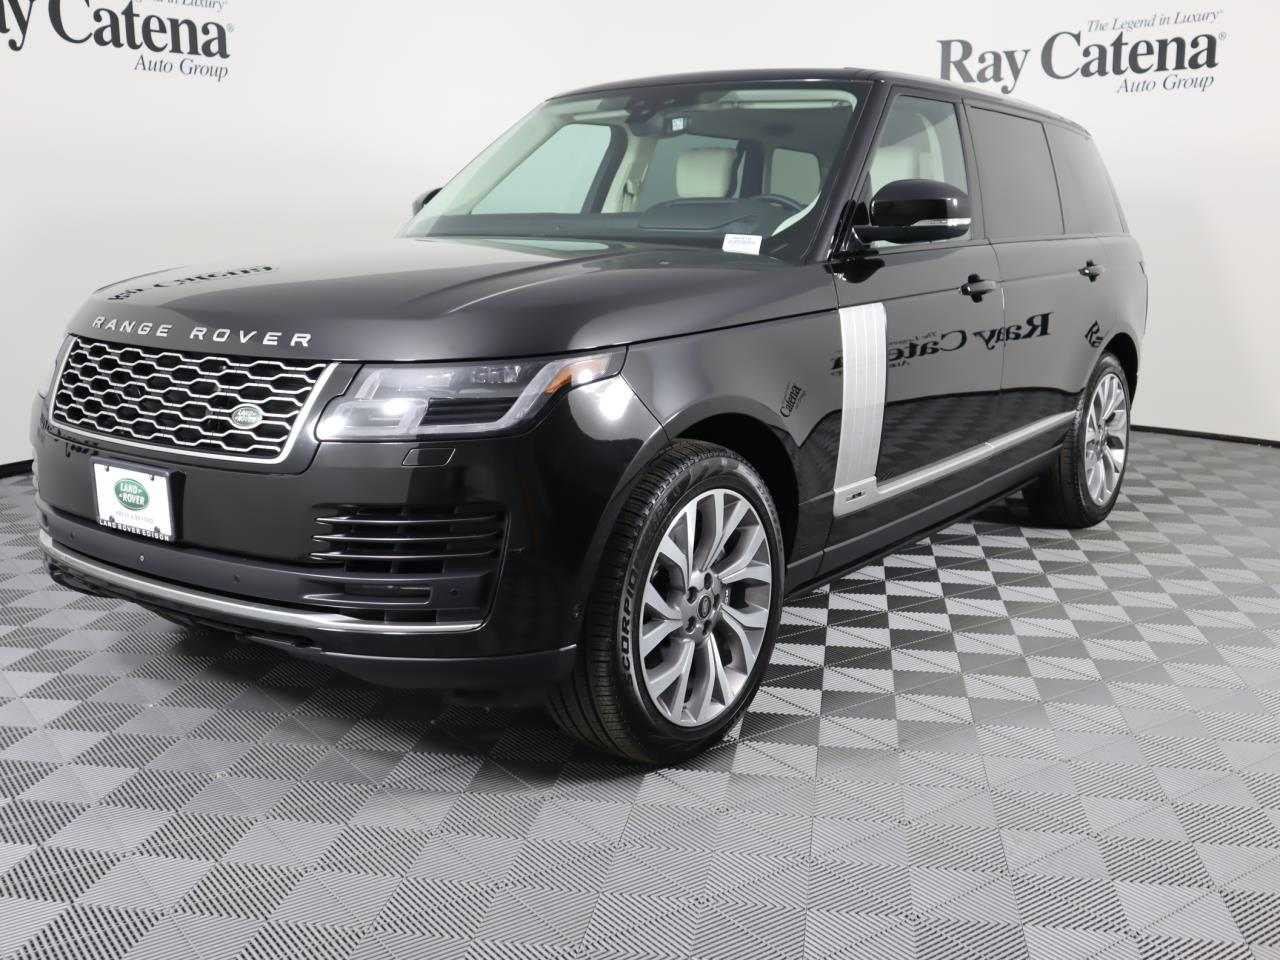 Certified Pre-Owned 2018 Land Rover Range Rover V8 Supercharged LWB